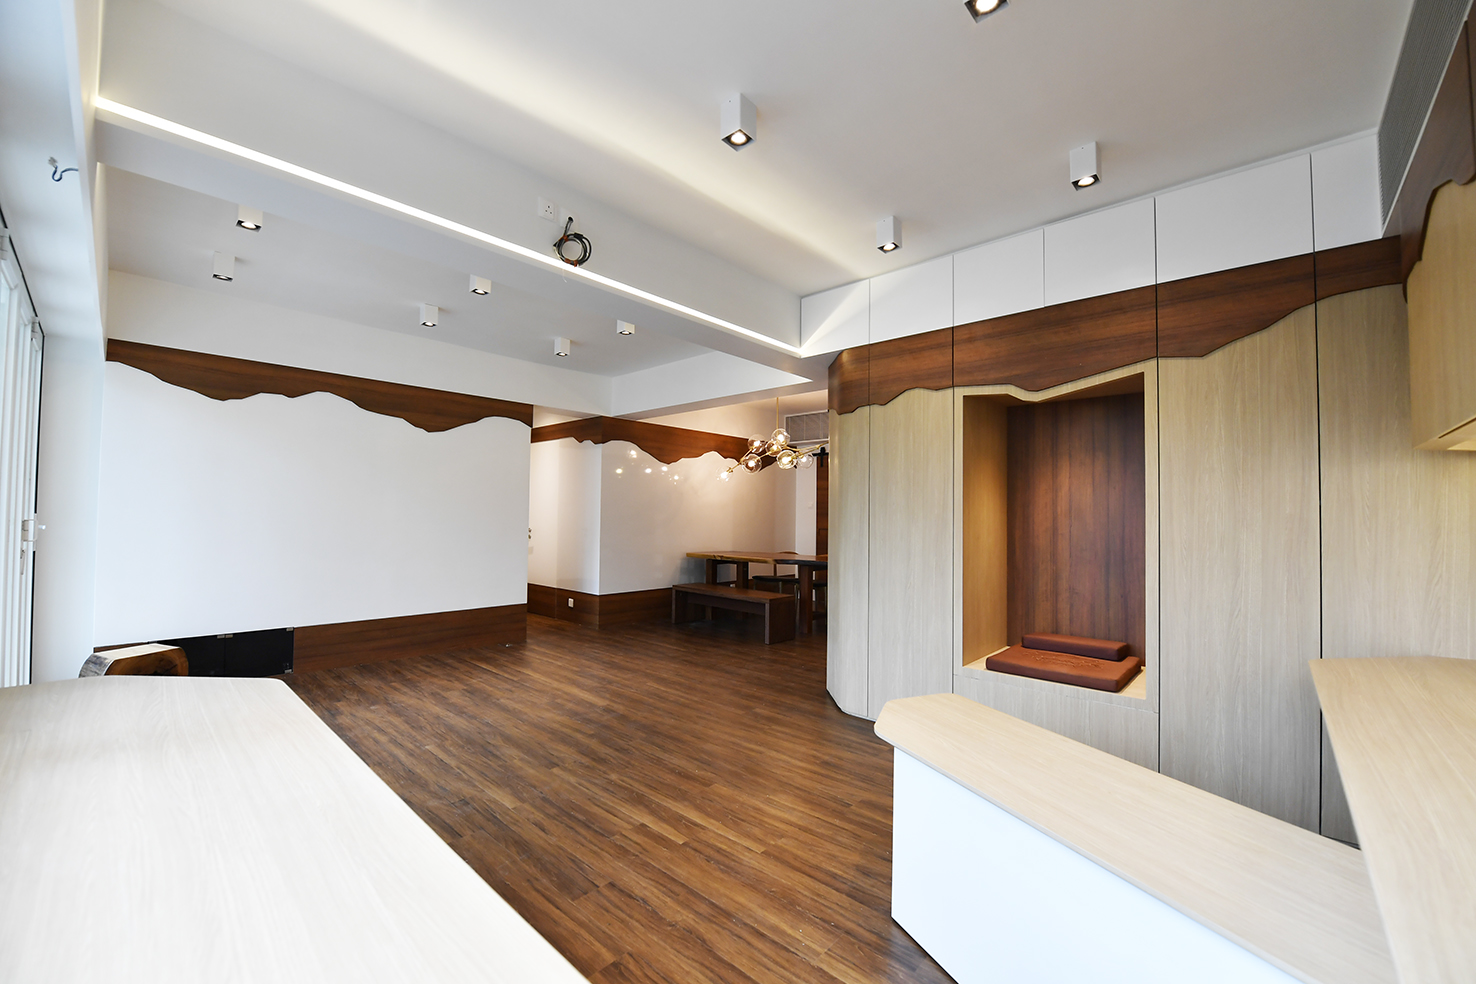 家居設計 Home Design hk 山景觀 Mountain Scape Apartment  (3)